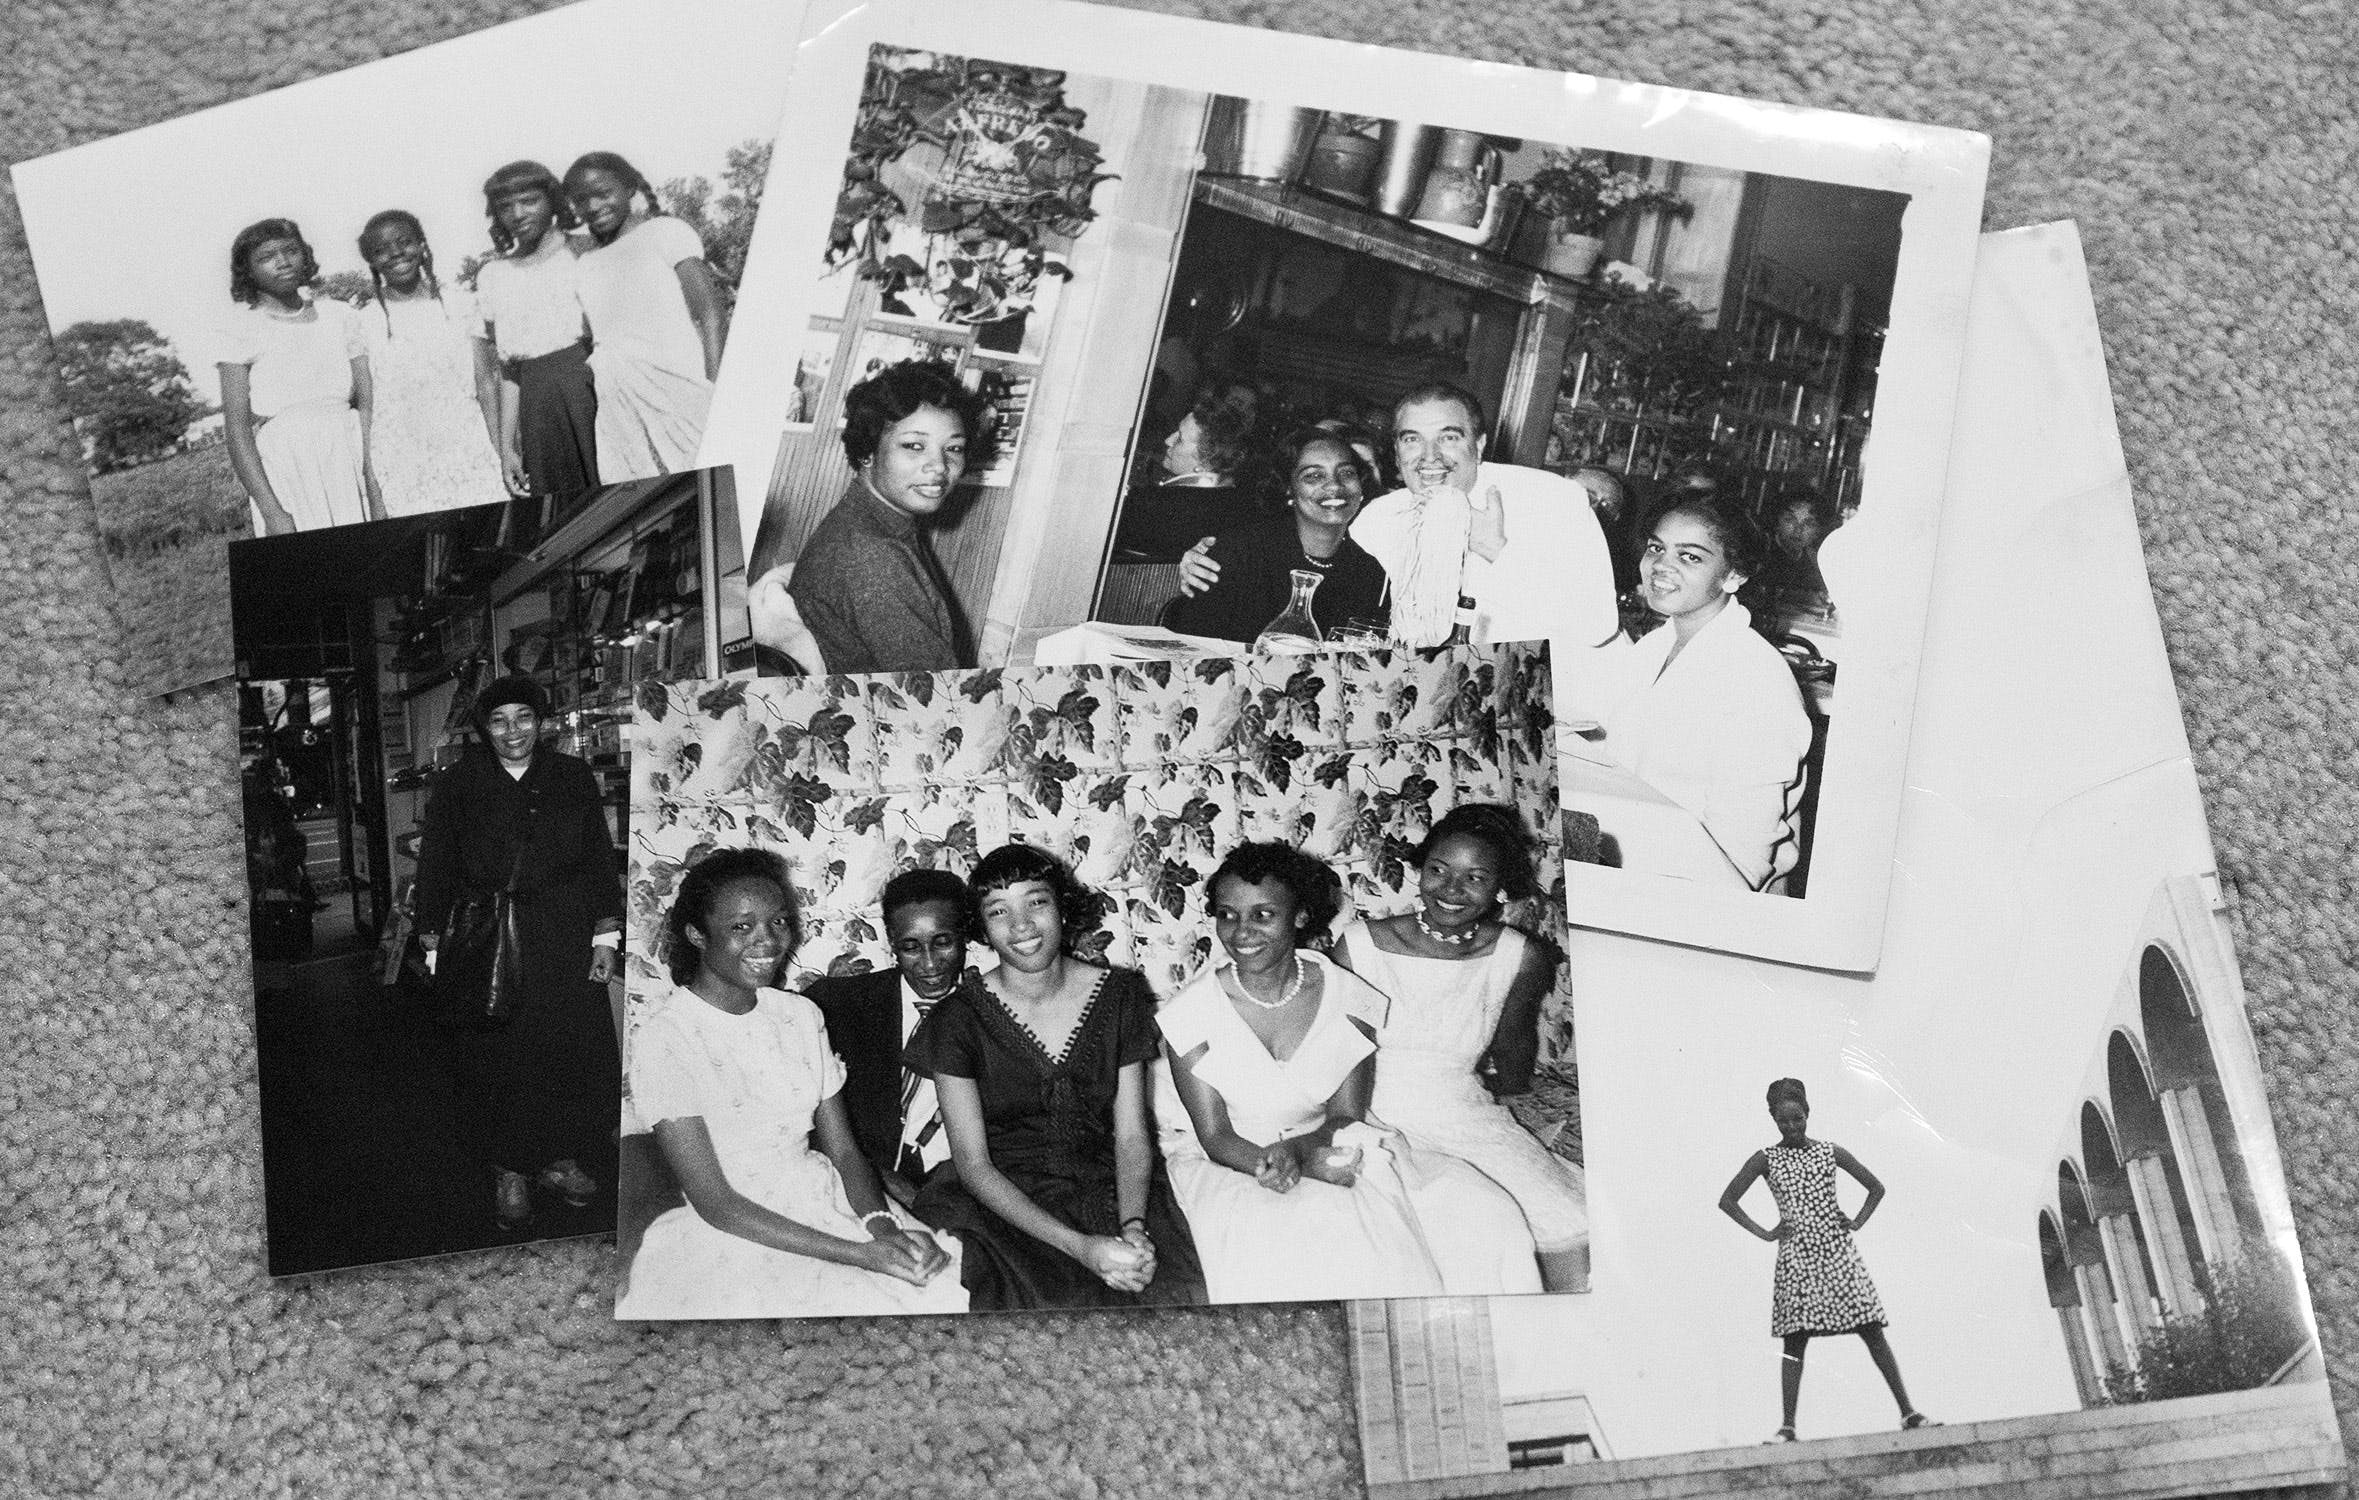 A small collection of Vivian's photographs from her childhood in Texas and her publishing days in New York.